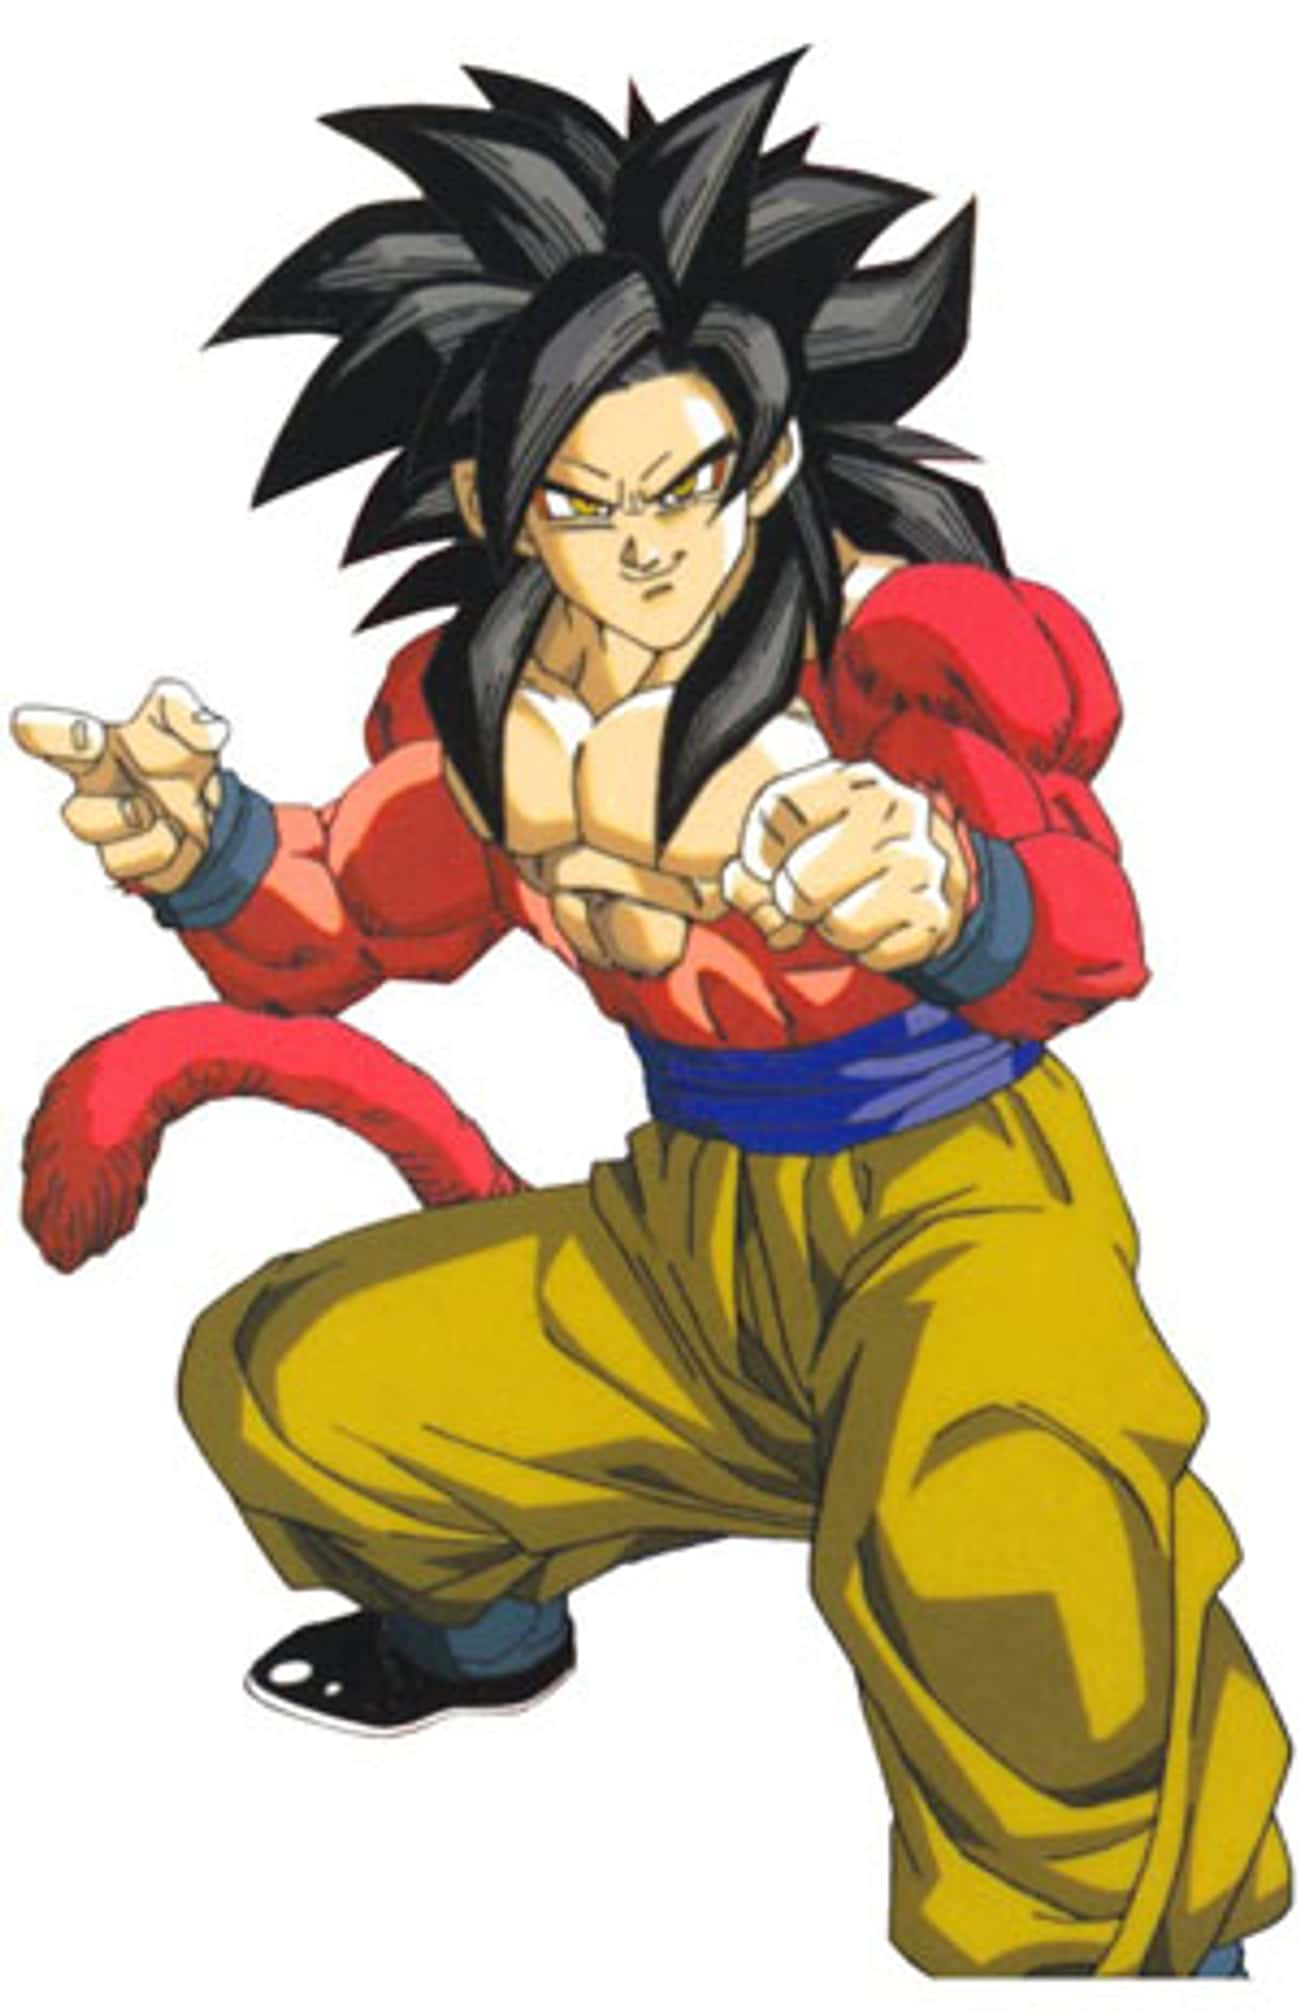 Super Saiyan 4 (Dragonball GT) is listed (or ranked) 3 on the list 5 Most Desirable Abilities in Anime